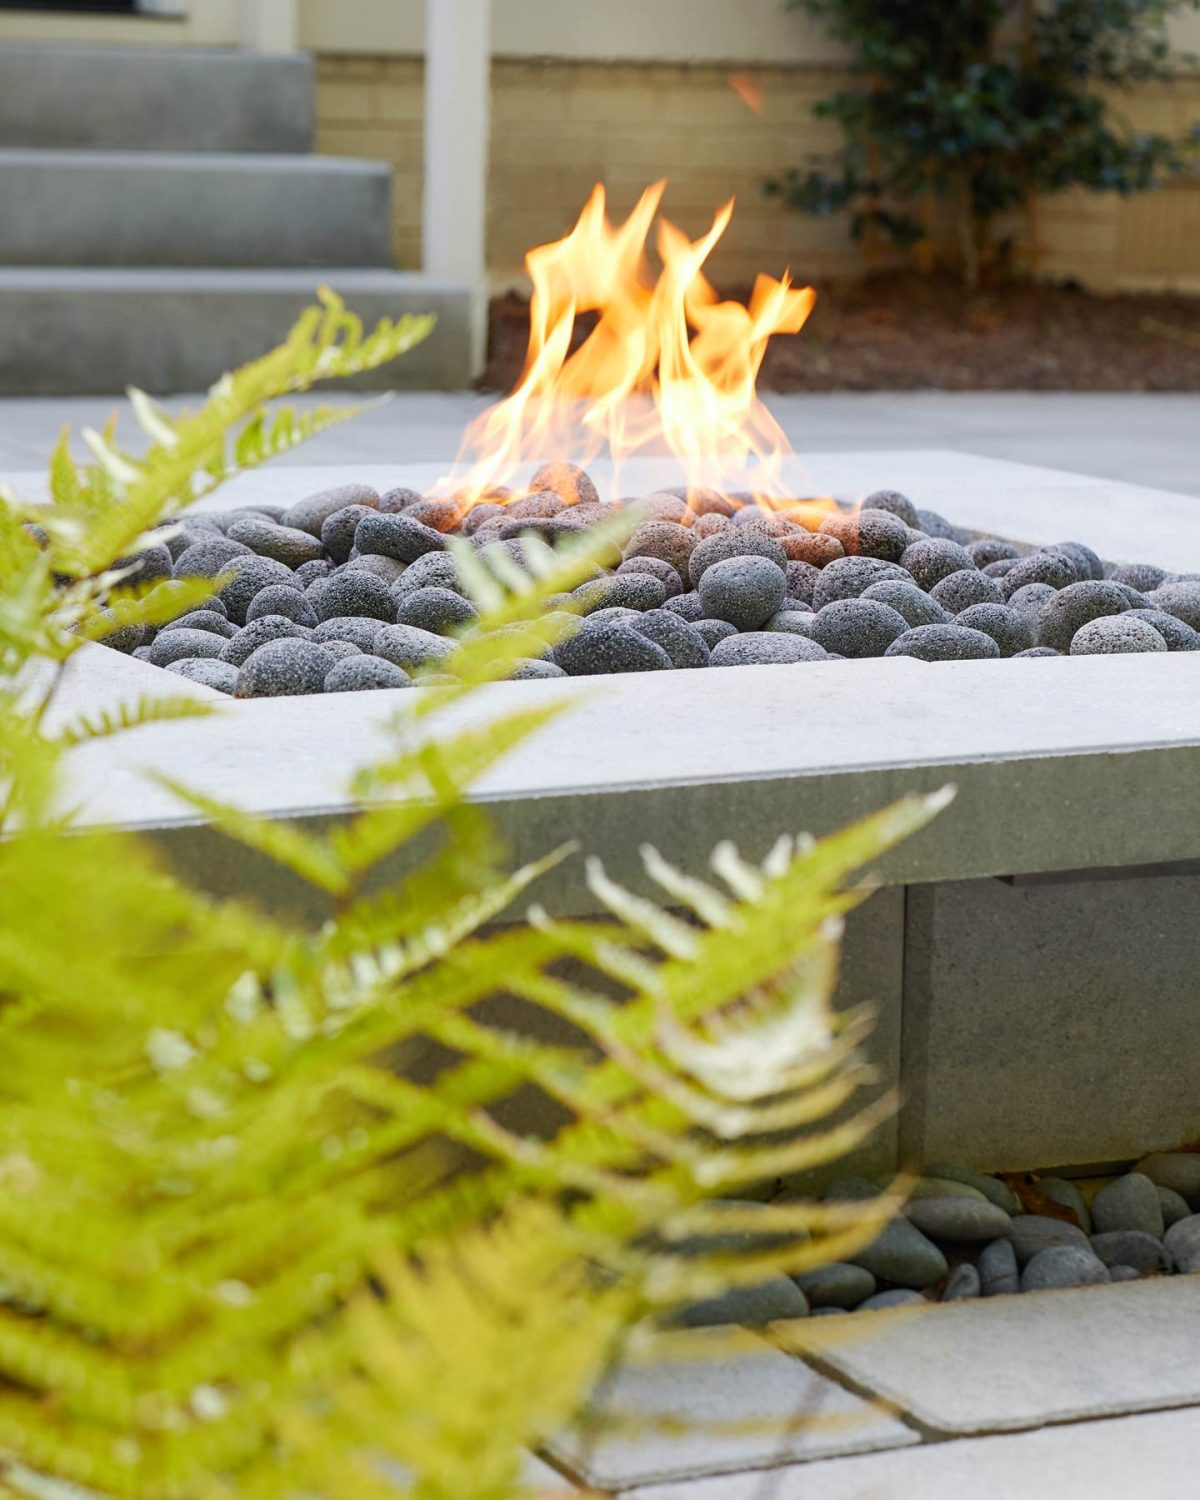 Editorial lifestyle photo of an outdoor stone fireplace